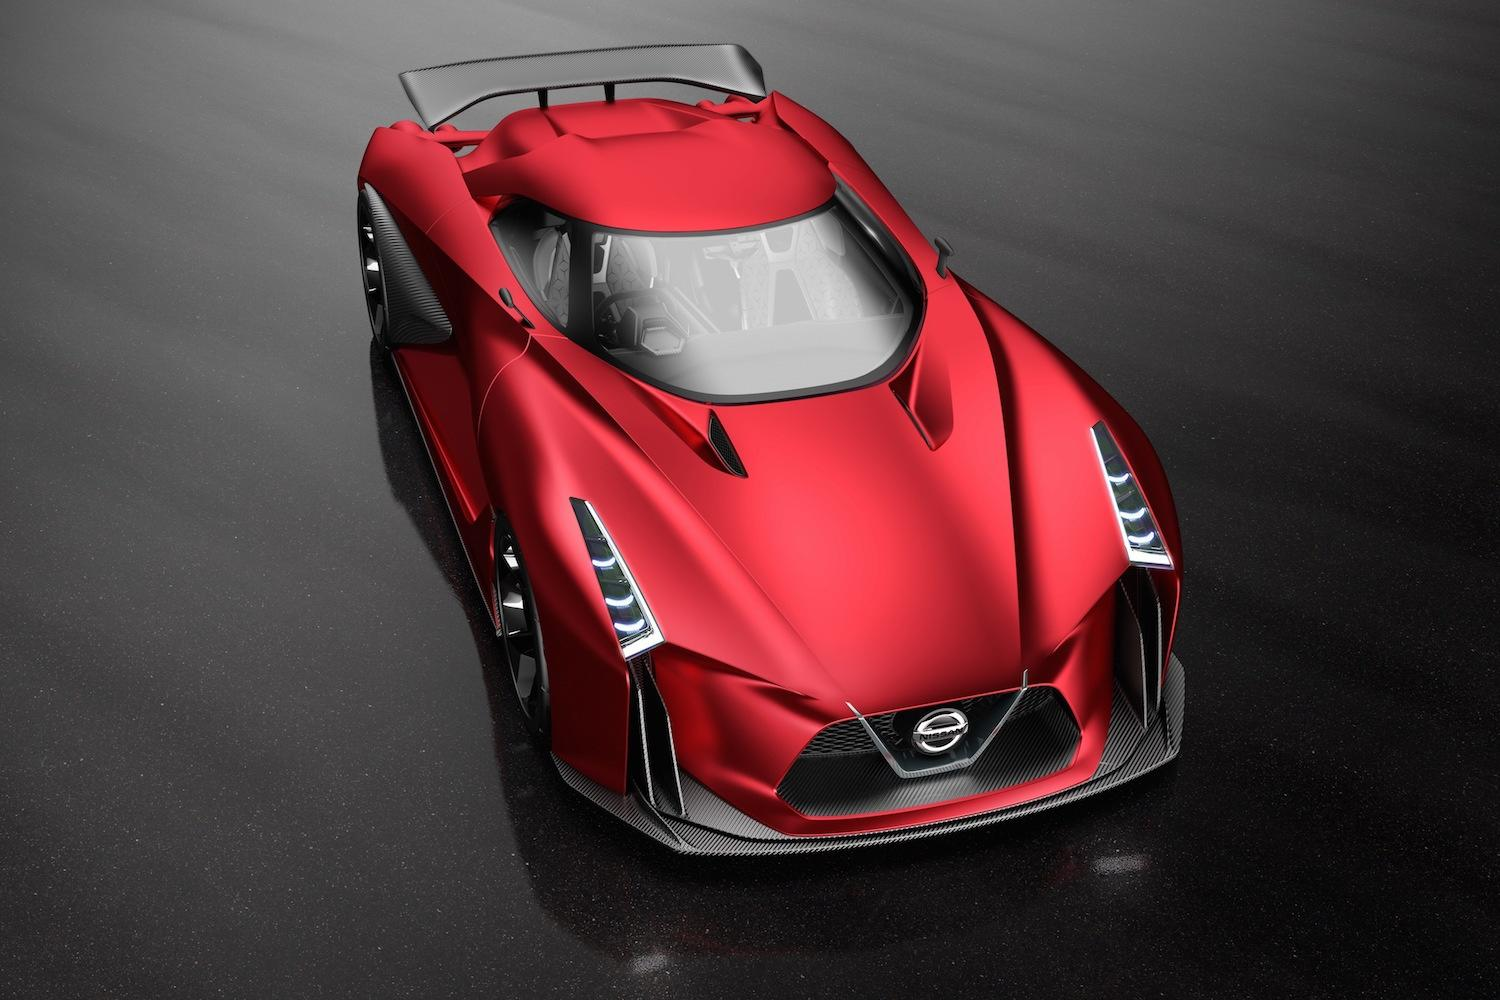 Nissan's all-new GT-R sports car may have been delayed into the next decade